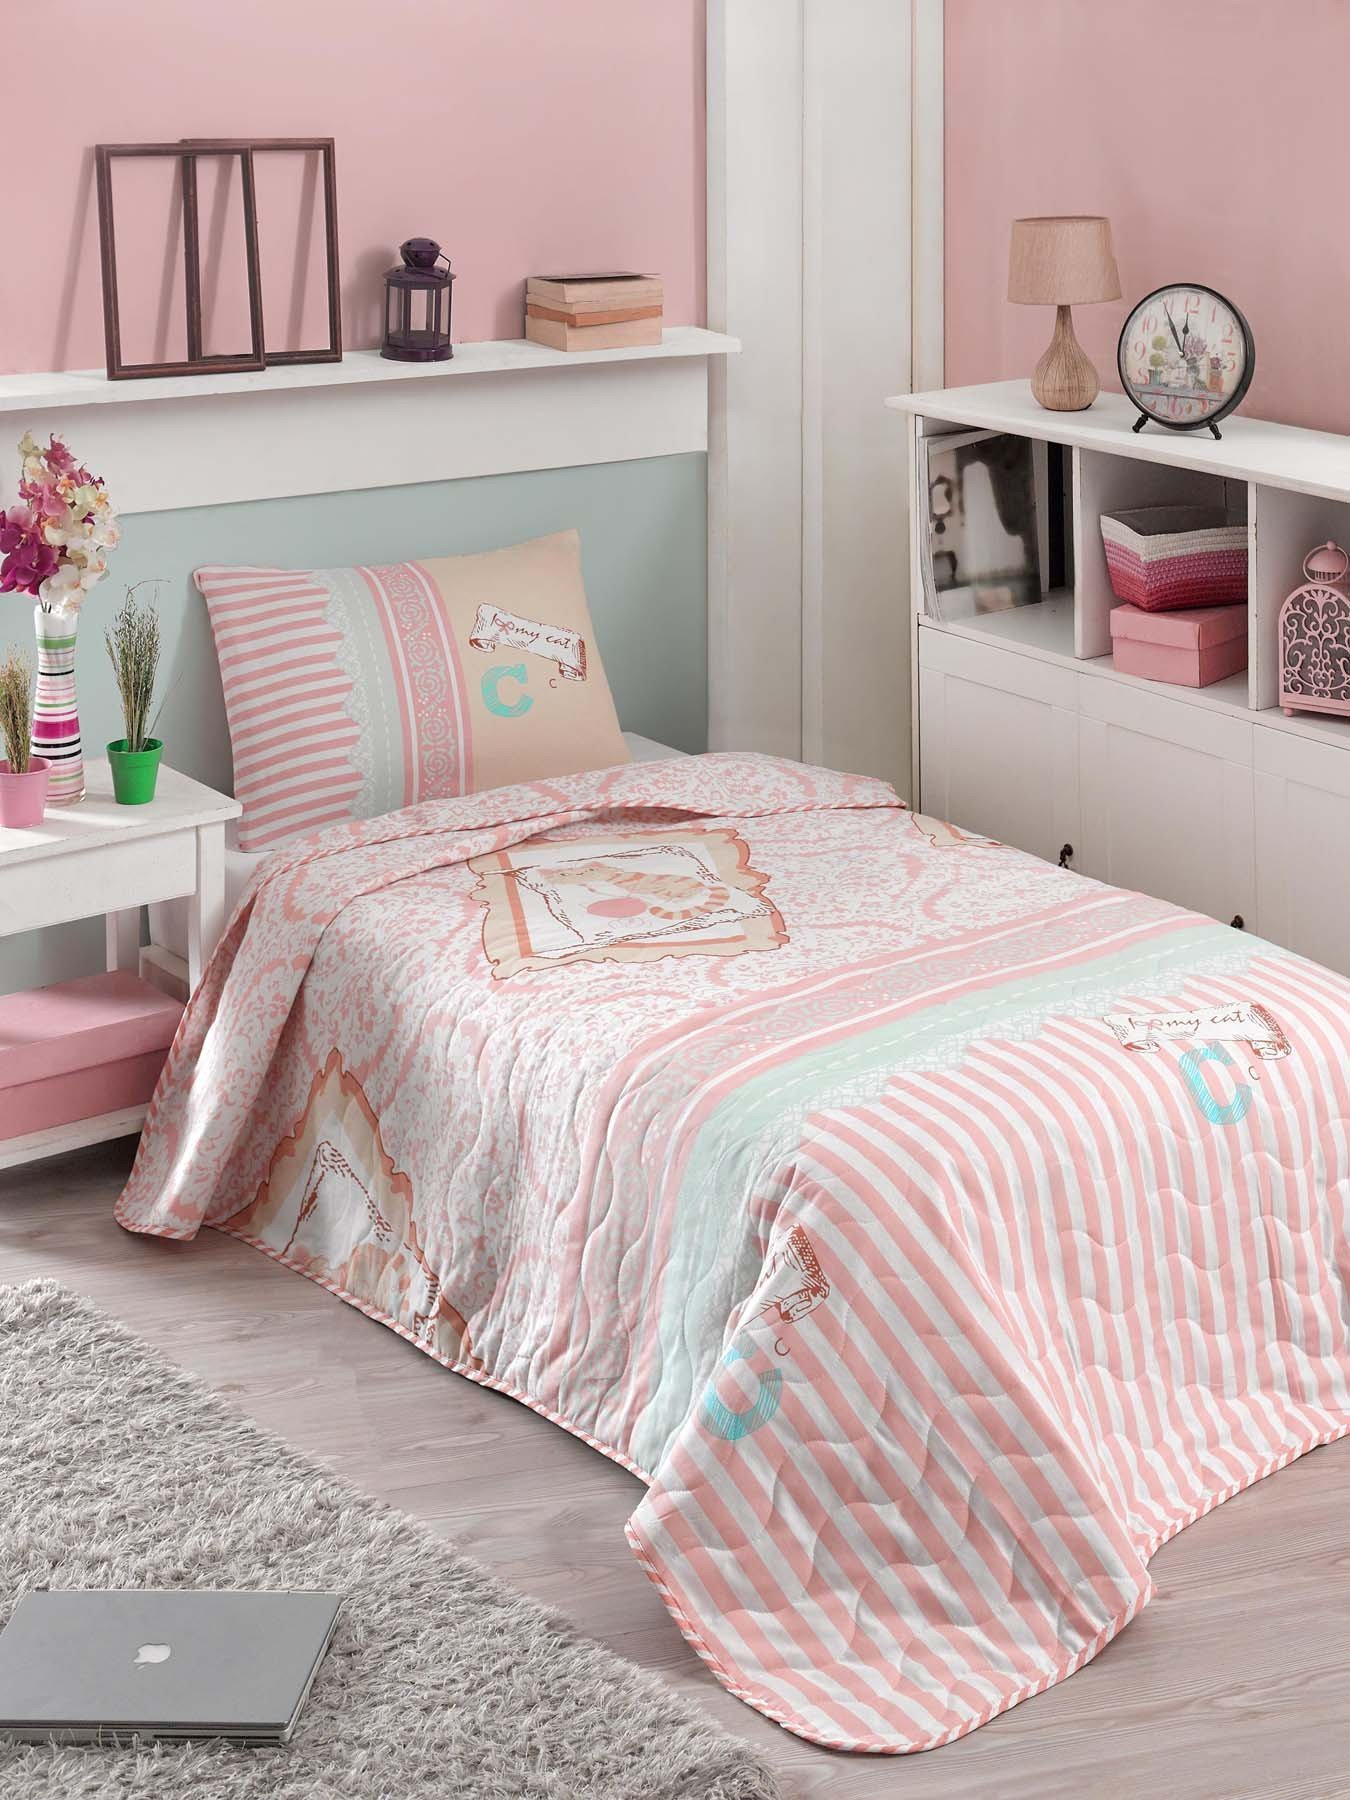 2 Pcs Twin and Single Bedroom Bedding Soft Colored [65% Cotton 35% Polyester (Cover)] / 100% FIBER (Filling) / Single Quilted Bedspread Set Soft Relaxed Comfortable Pattern Cat Animal Colourful Single